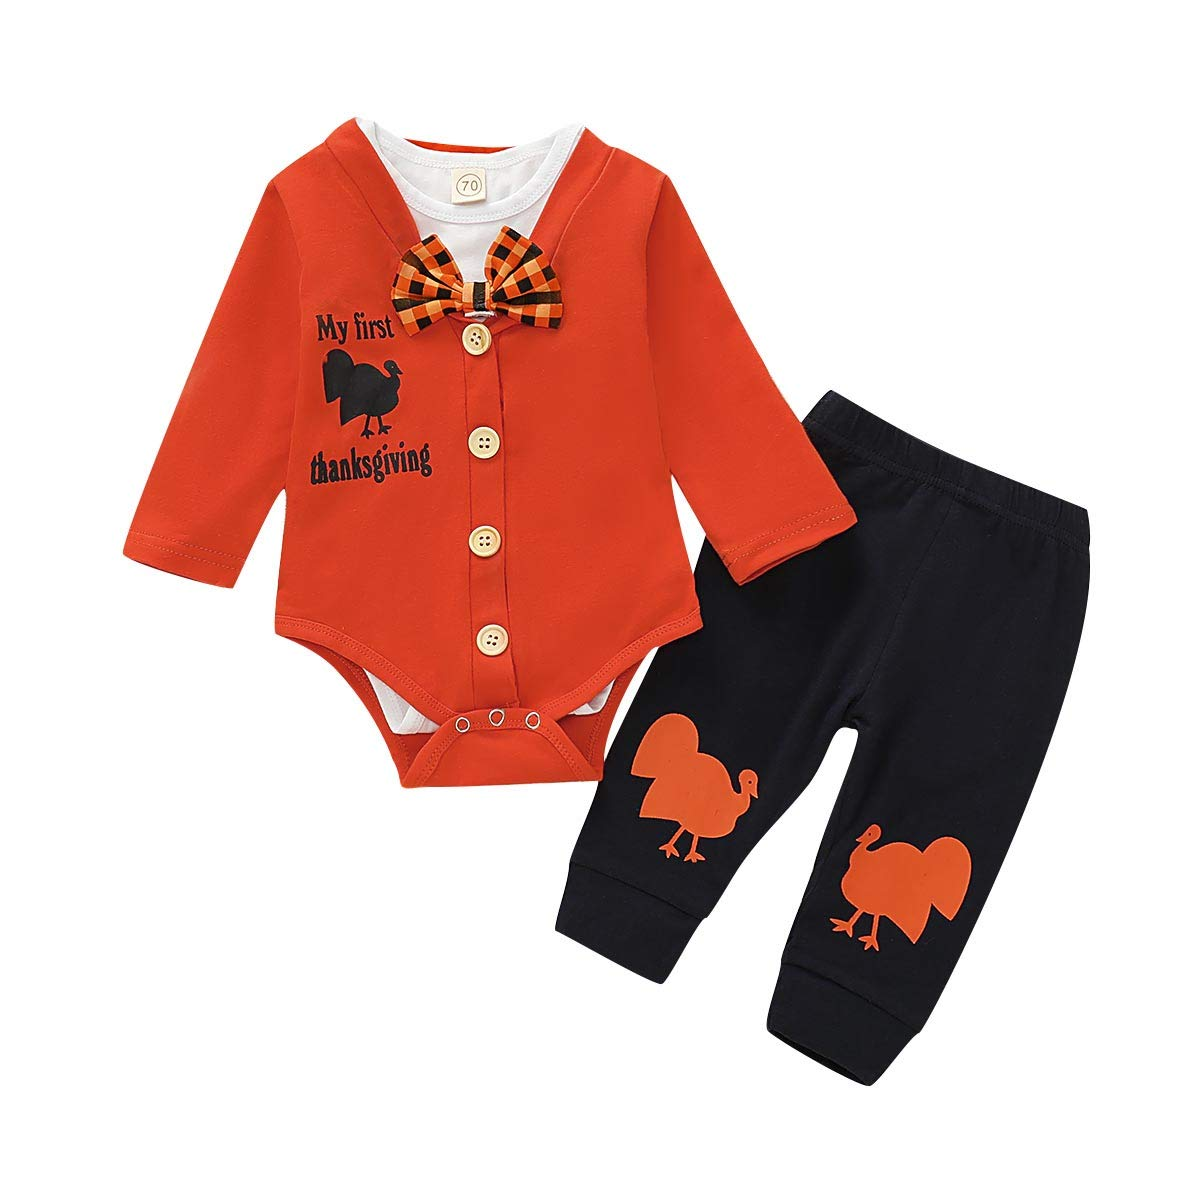 3Pcs Sets Baby Boys Thanksgiving Outfit My First Thanksgiving Bodysuit Romper Pants Clothes (Orange, 3-6 M (70))